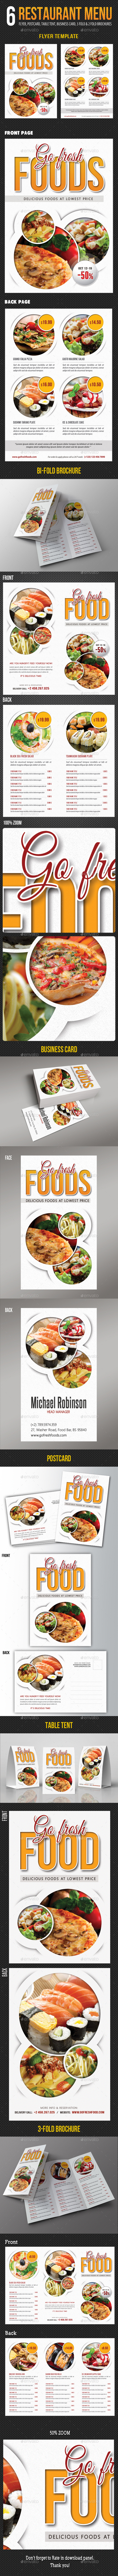 6 in 1 Go Fresh Restaurant Food Bundle - Food Menus Print Templates